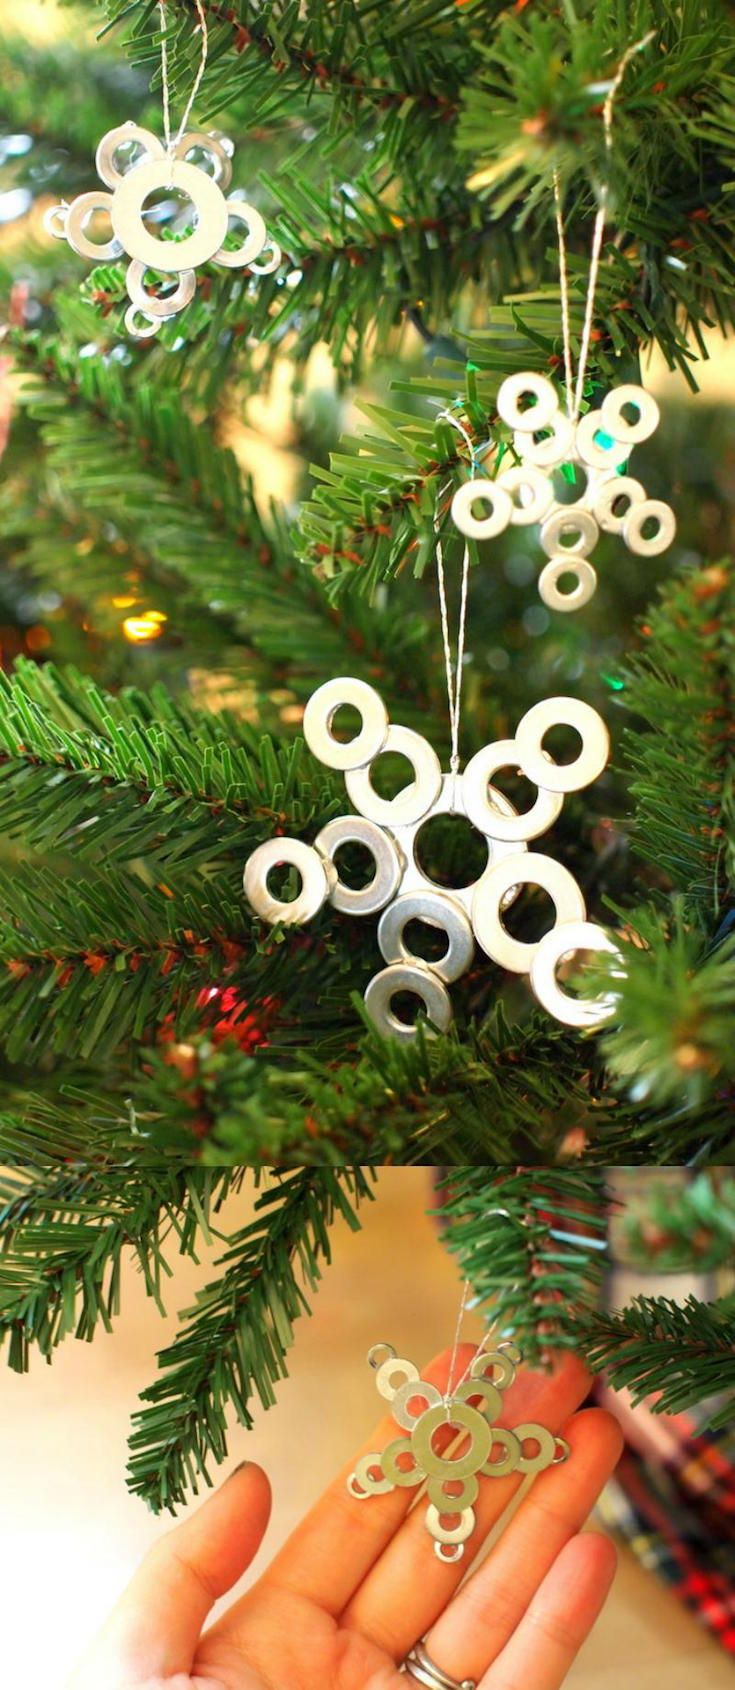 DIY Star Ornaments Made From Washers Homemade christmas